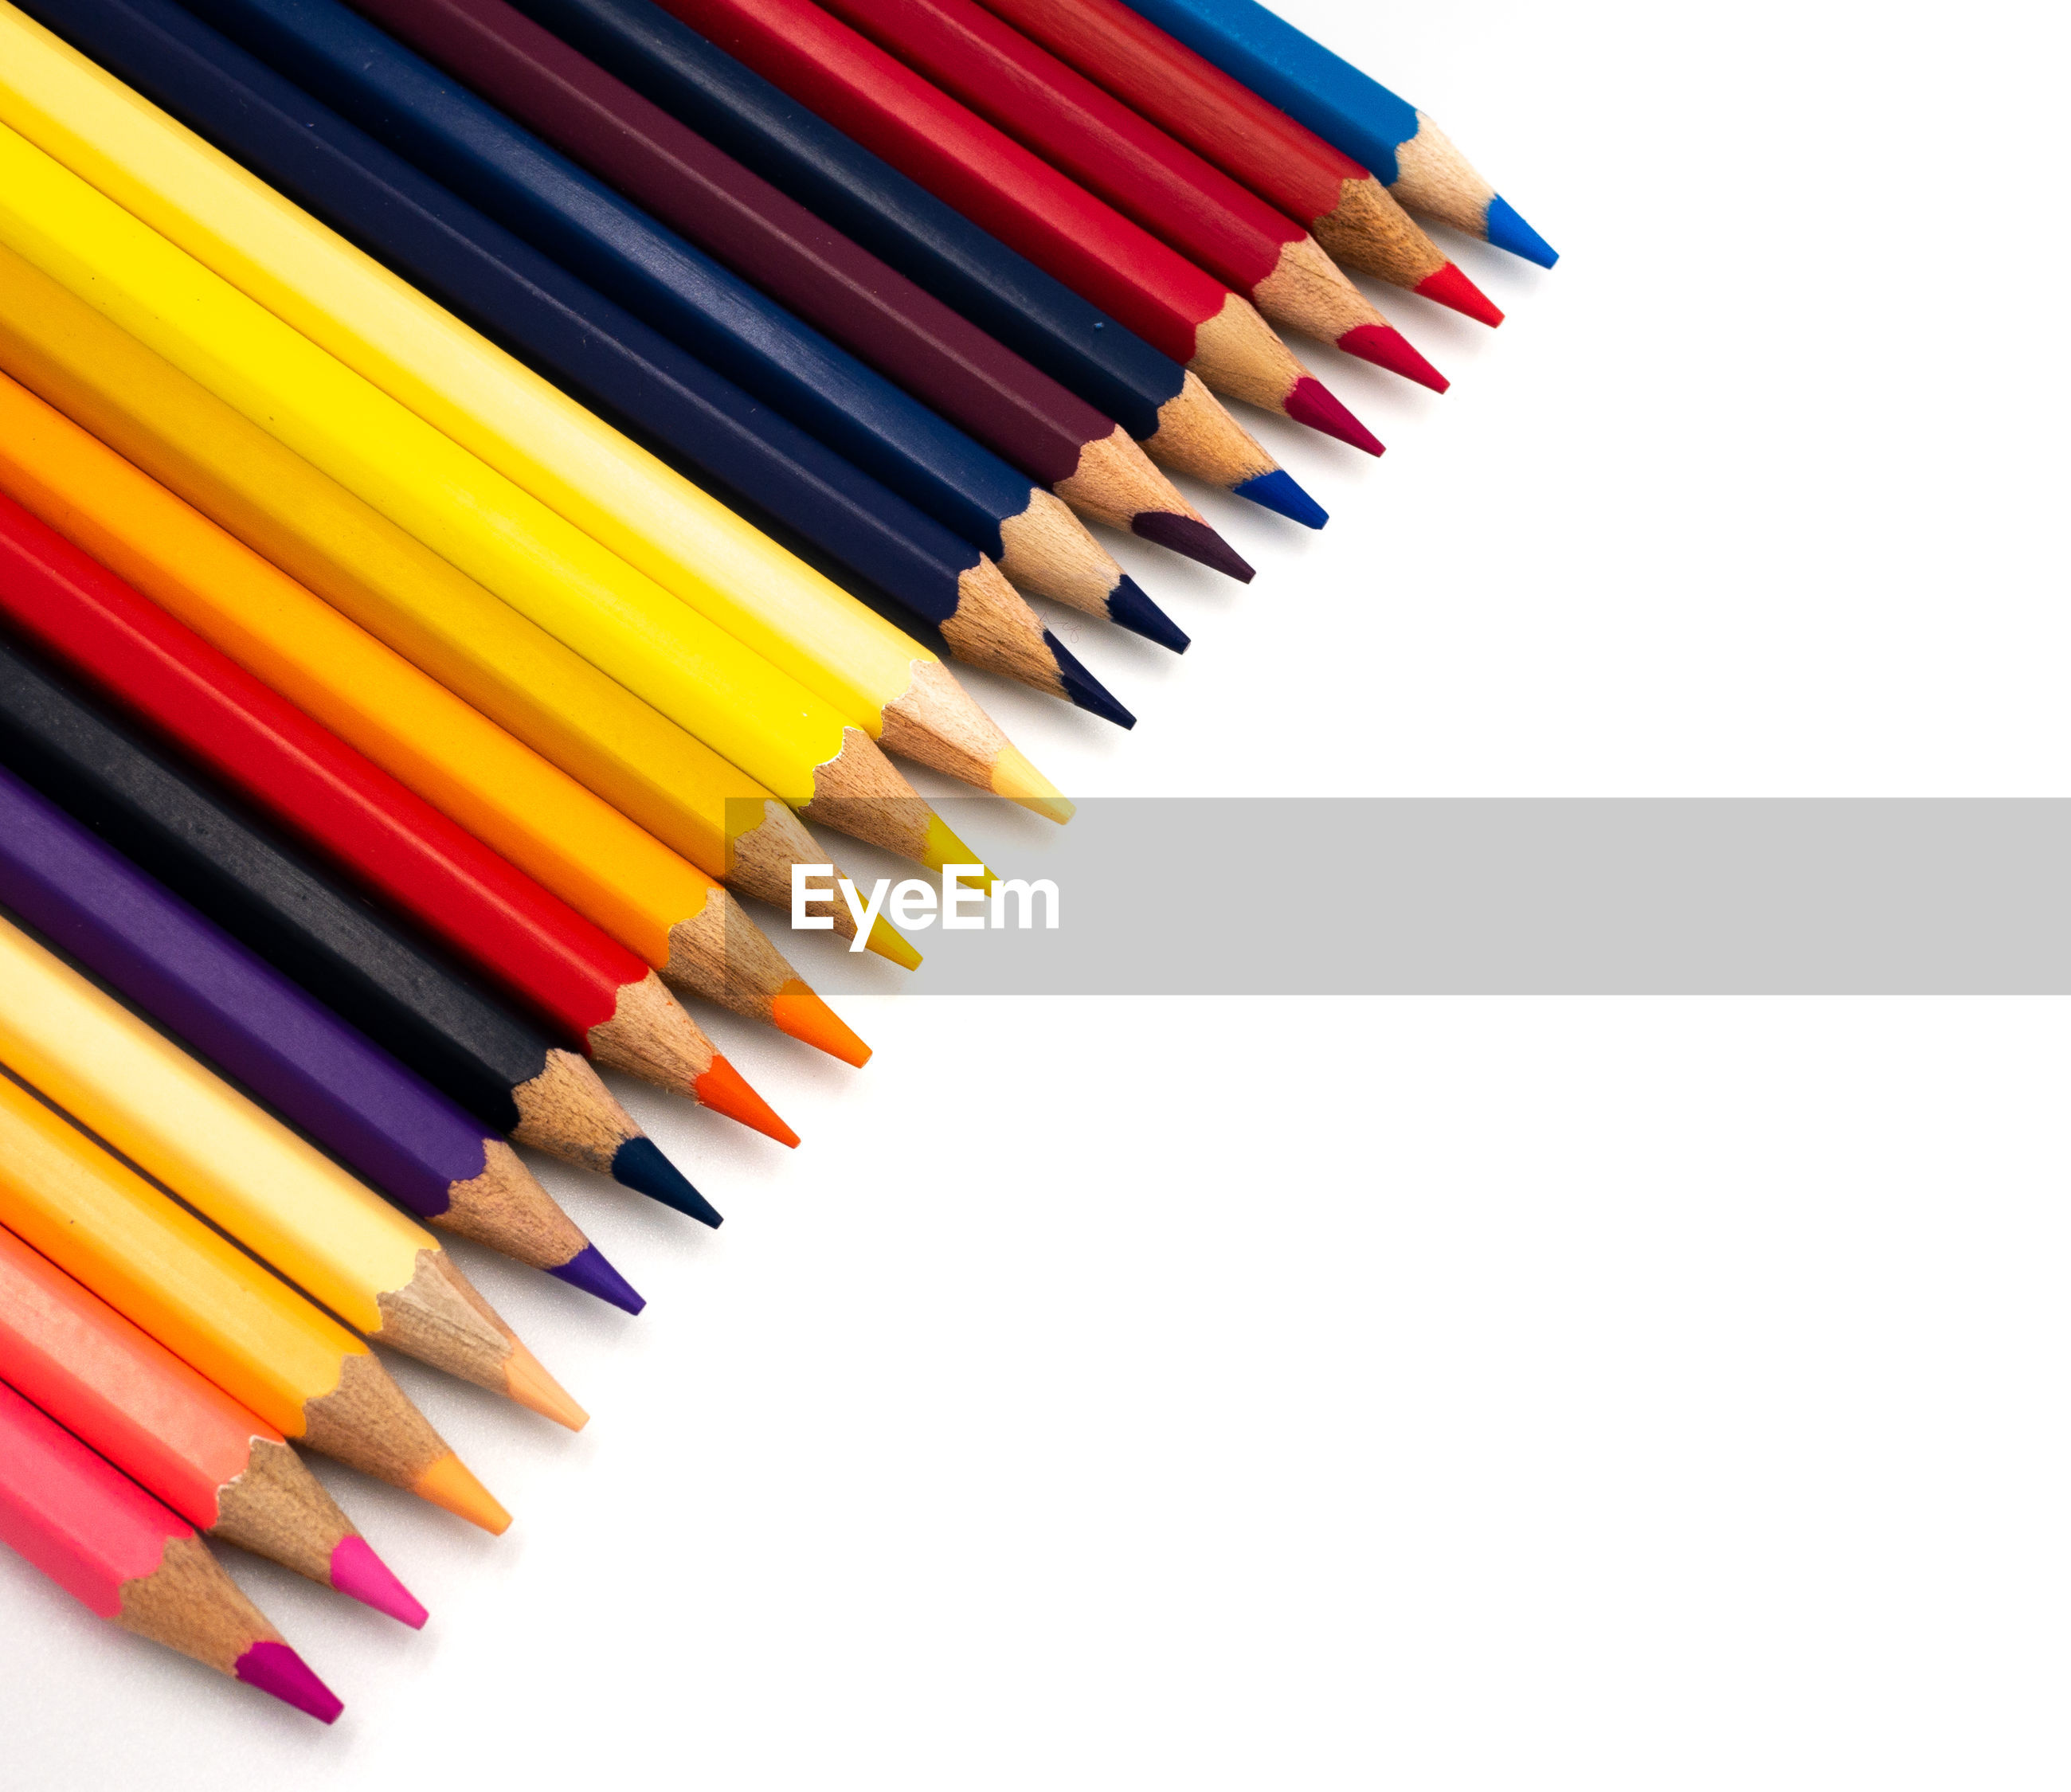 High angle view of multi colored pencils against white background